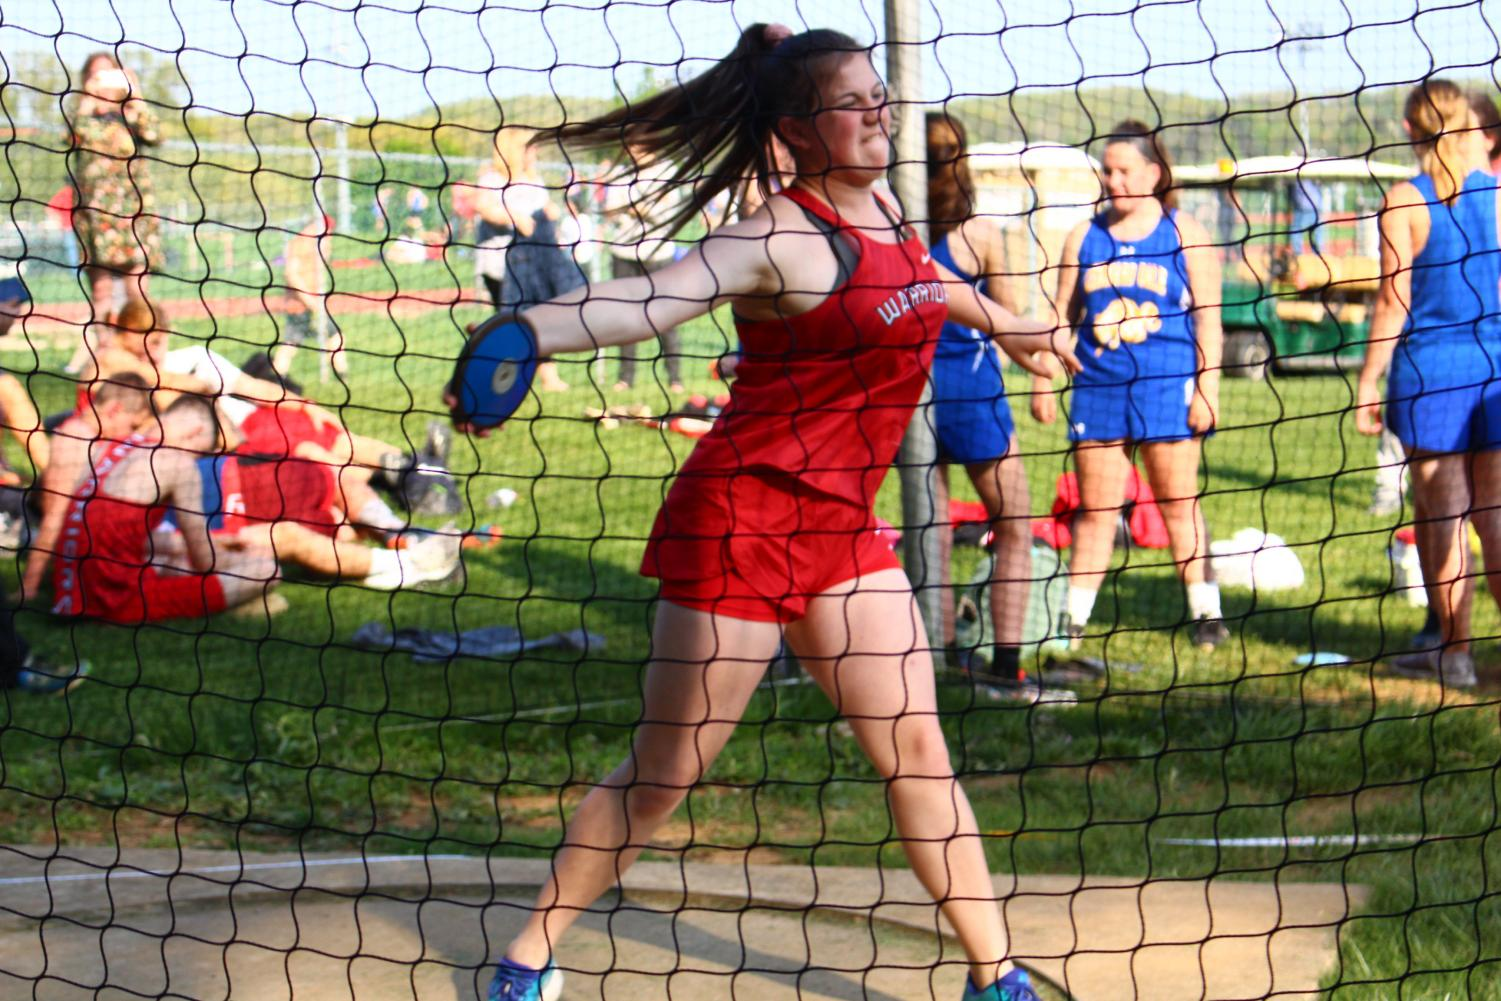 Freshman+Andrea+Hammond+throws+the+discus+in+the+Kennard-Dale+meet.+Hammond+finished+in+second+place+with+a+distance+of+64%27+10%22.+She+placed+first+in+the+shot+put+with+a+distance+of+29%27+10%22.+For+the+season%2C+the+boys+track+and+field+team+finished+with+a+regular+season+record+of+5-2%2C+while+the+girls+went+6-1.+